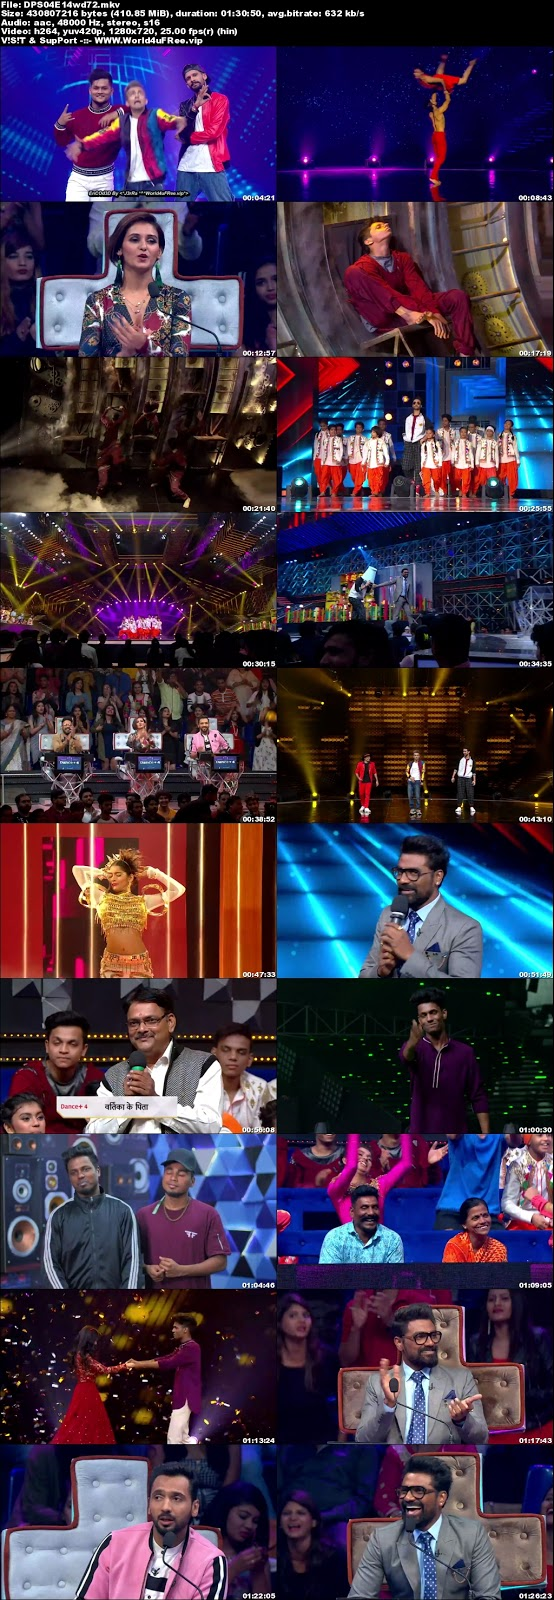 Dance Plus S4 24 November 2018 720p WEBRip 300Mb x264 world4ufree.vip tv show Dance Plus 4 2018 hindi tv show Dance Plus 4 2018 Season 4 Star Plus tv show compressed small size free download or watch online at world4ufree.vip